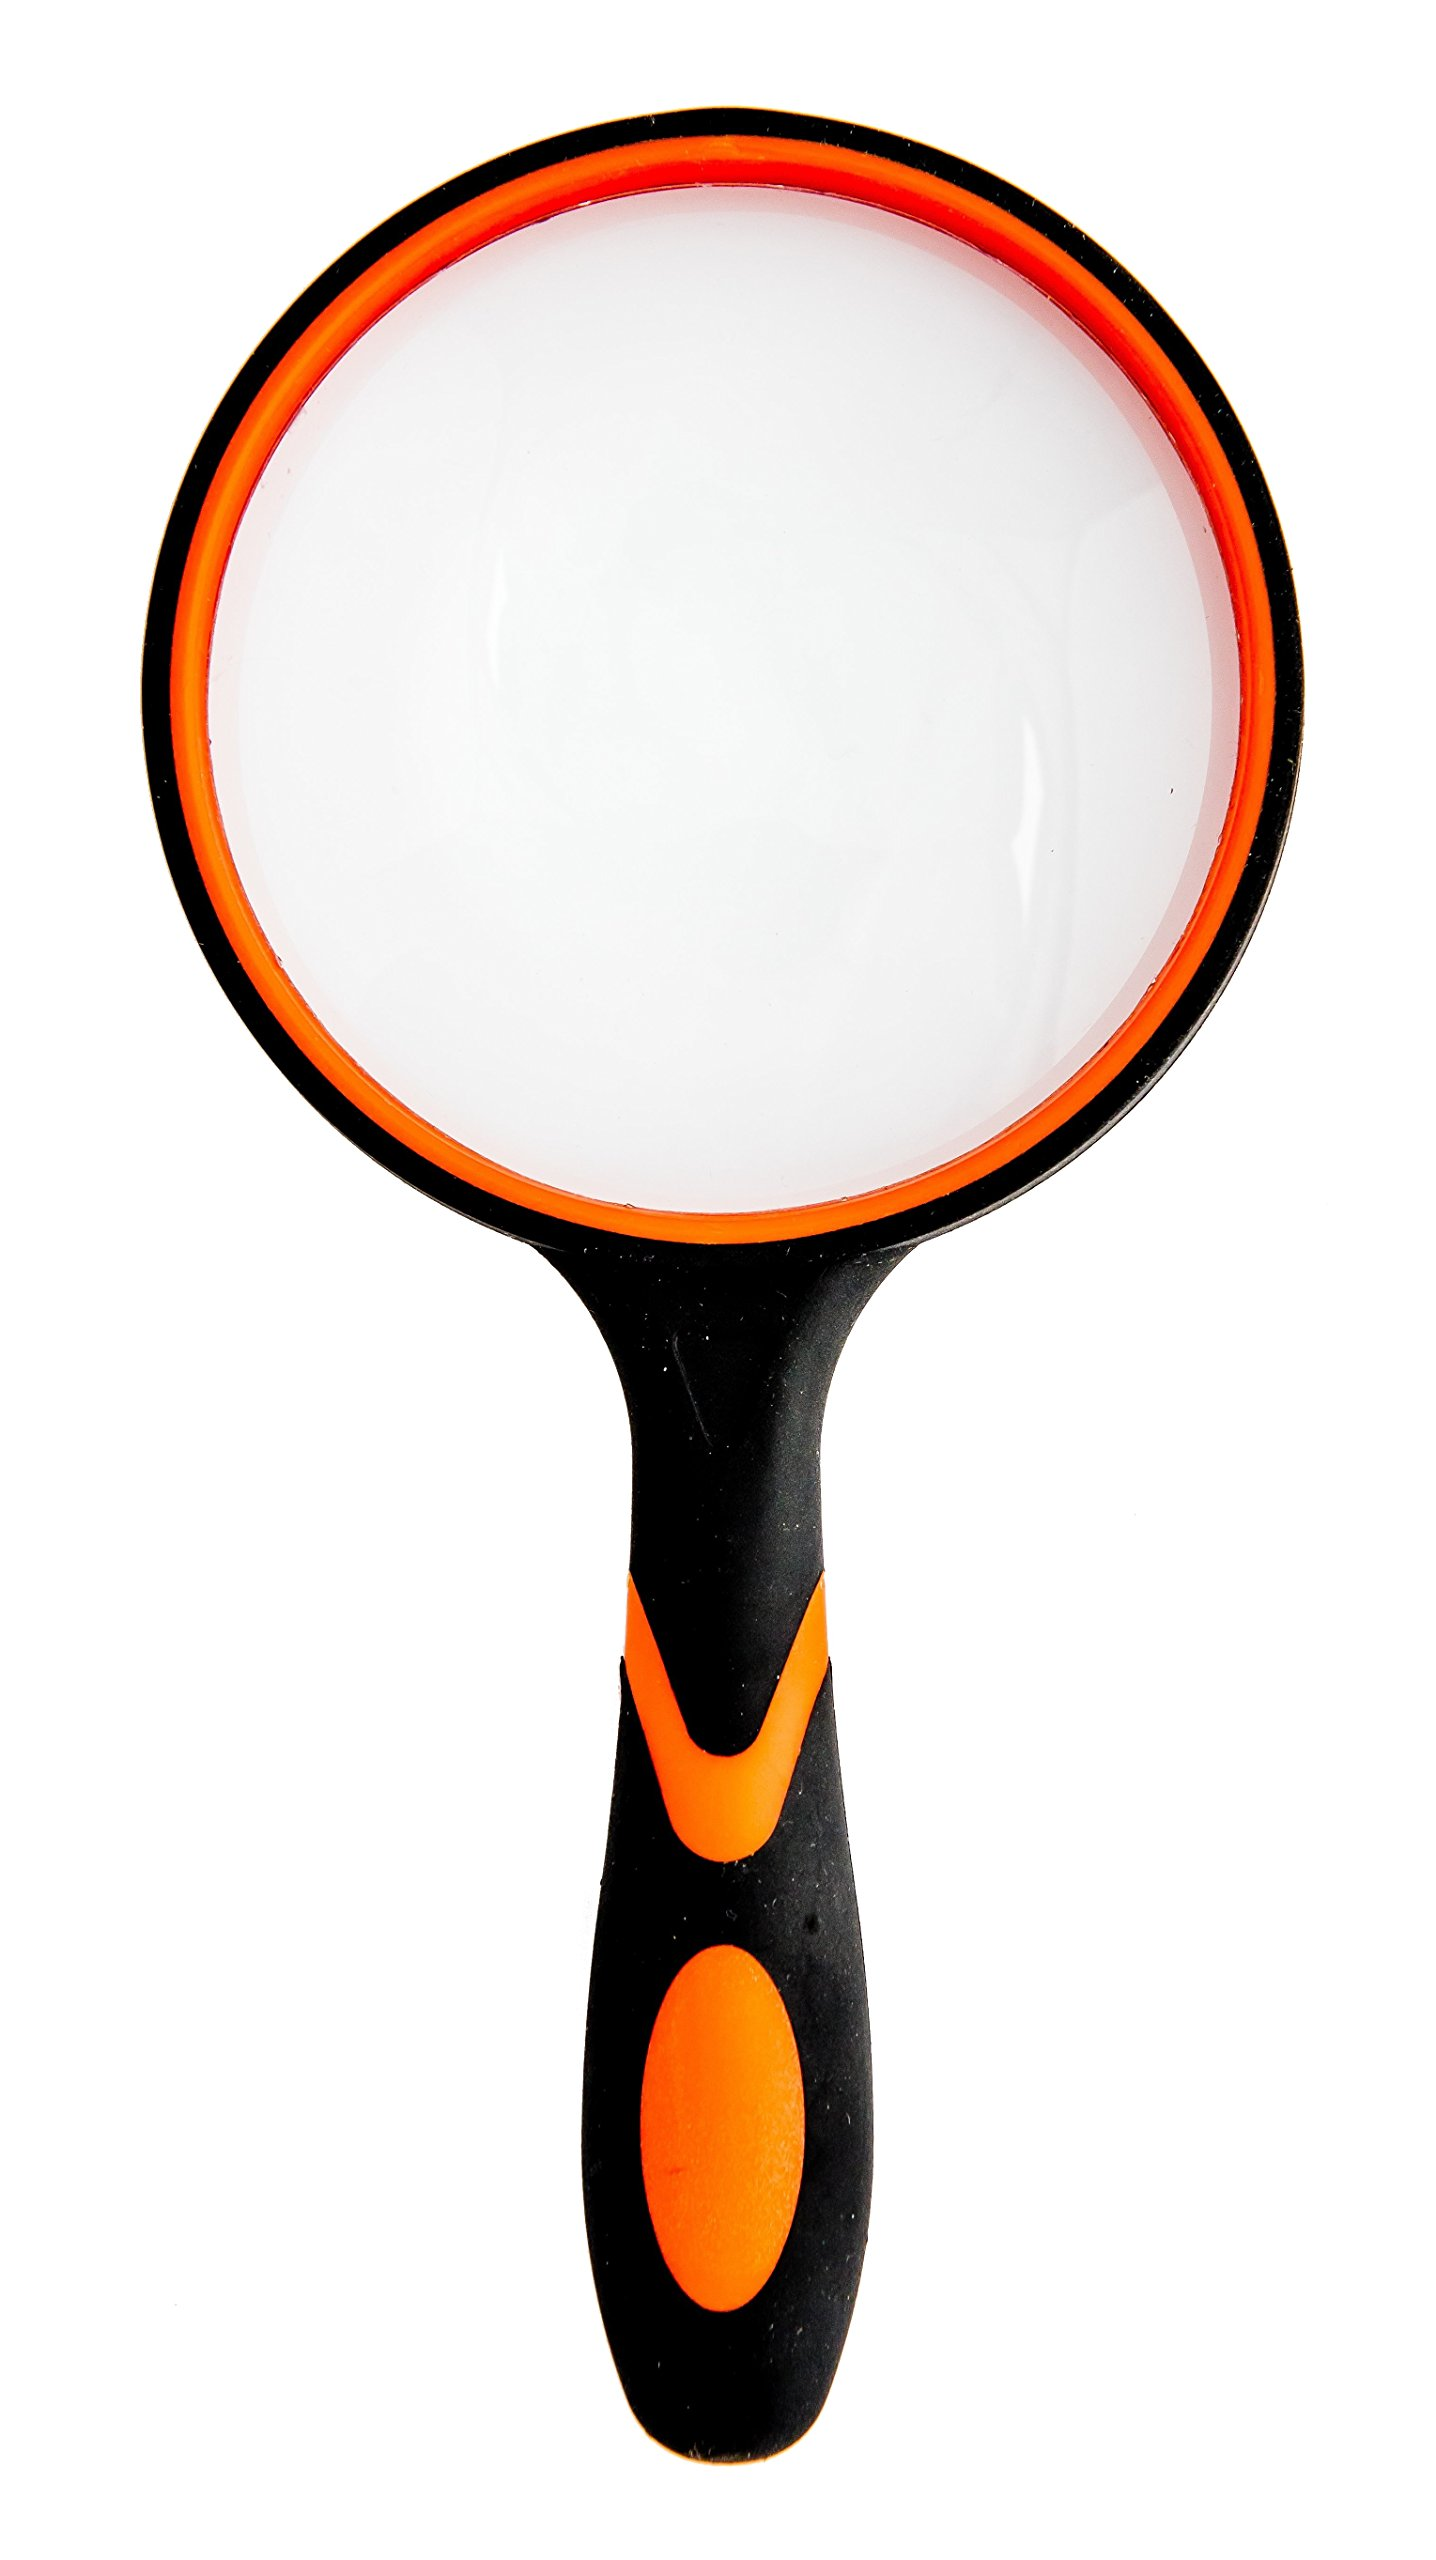 Professional Magnifying Glass 3.95 Inch Large- 3X Handheld Magnifier with Non-Slip Soft Rubber Handle for Reading, Observing Hobbies, Outdoor Exploring Fun.